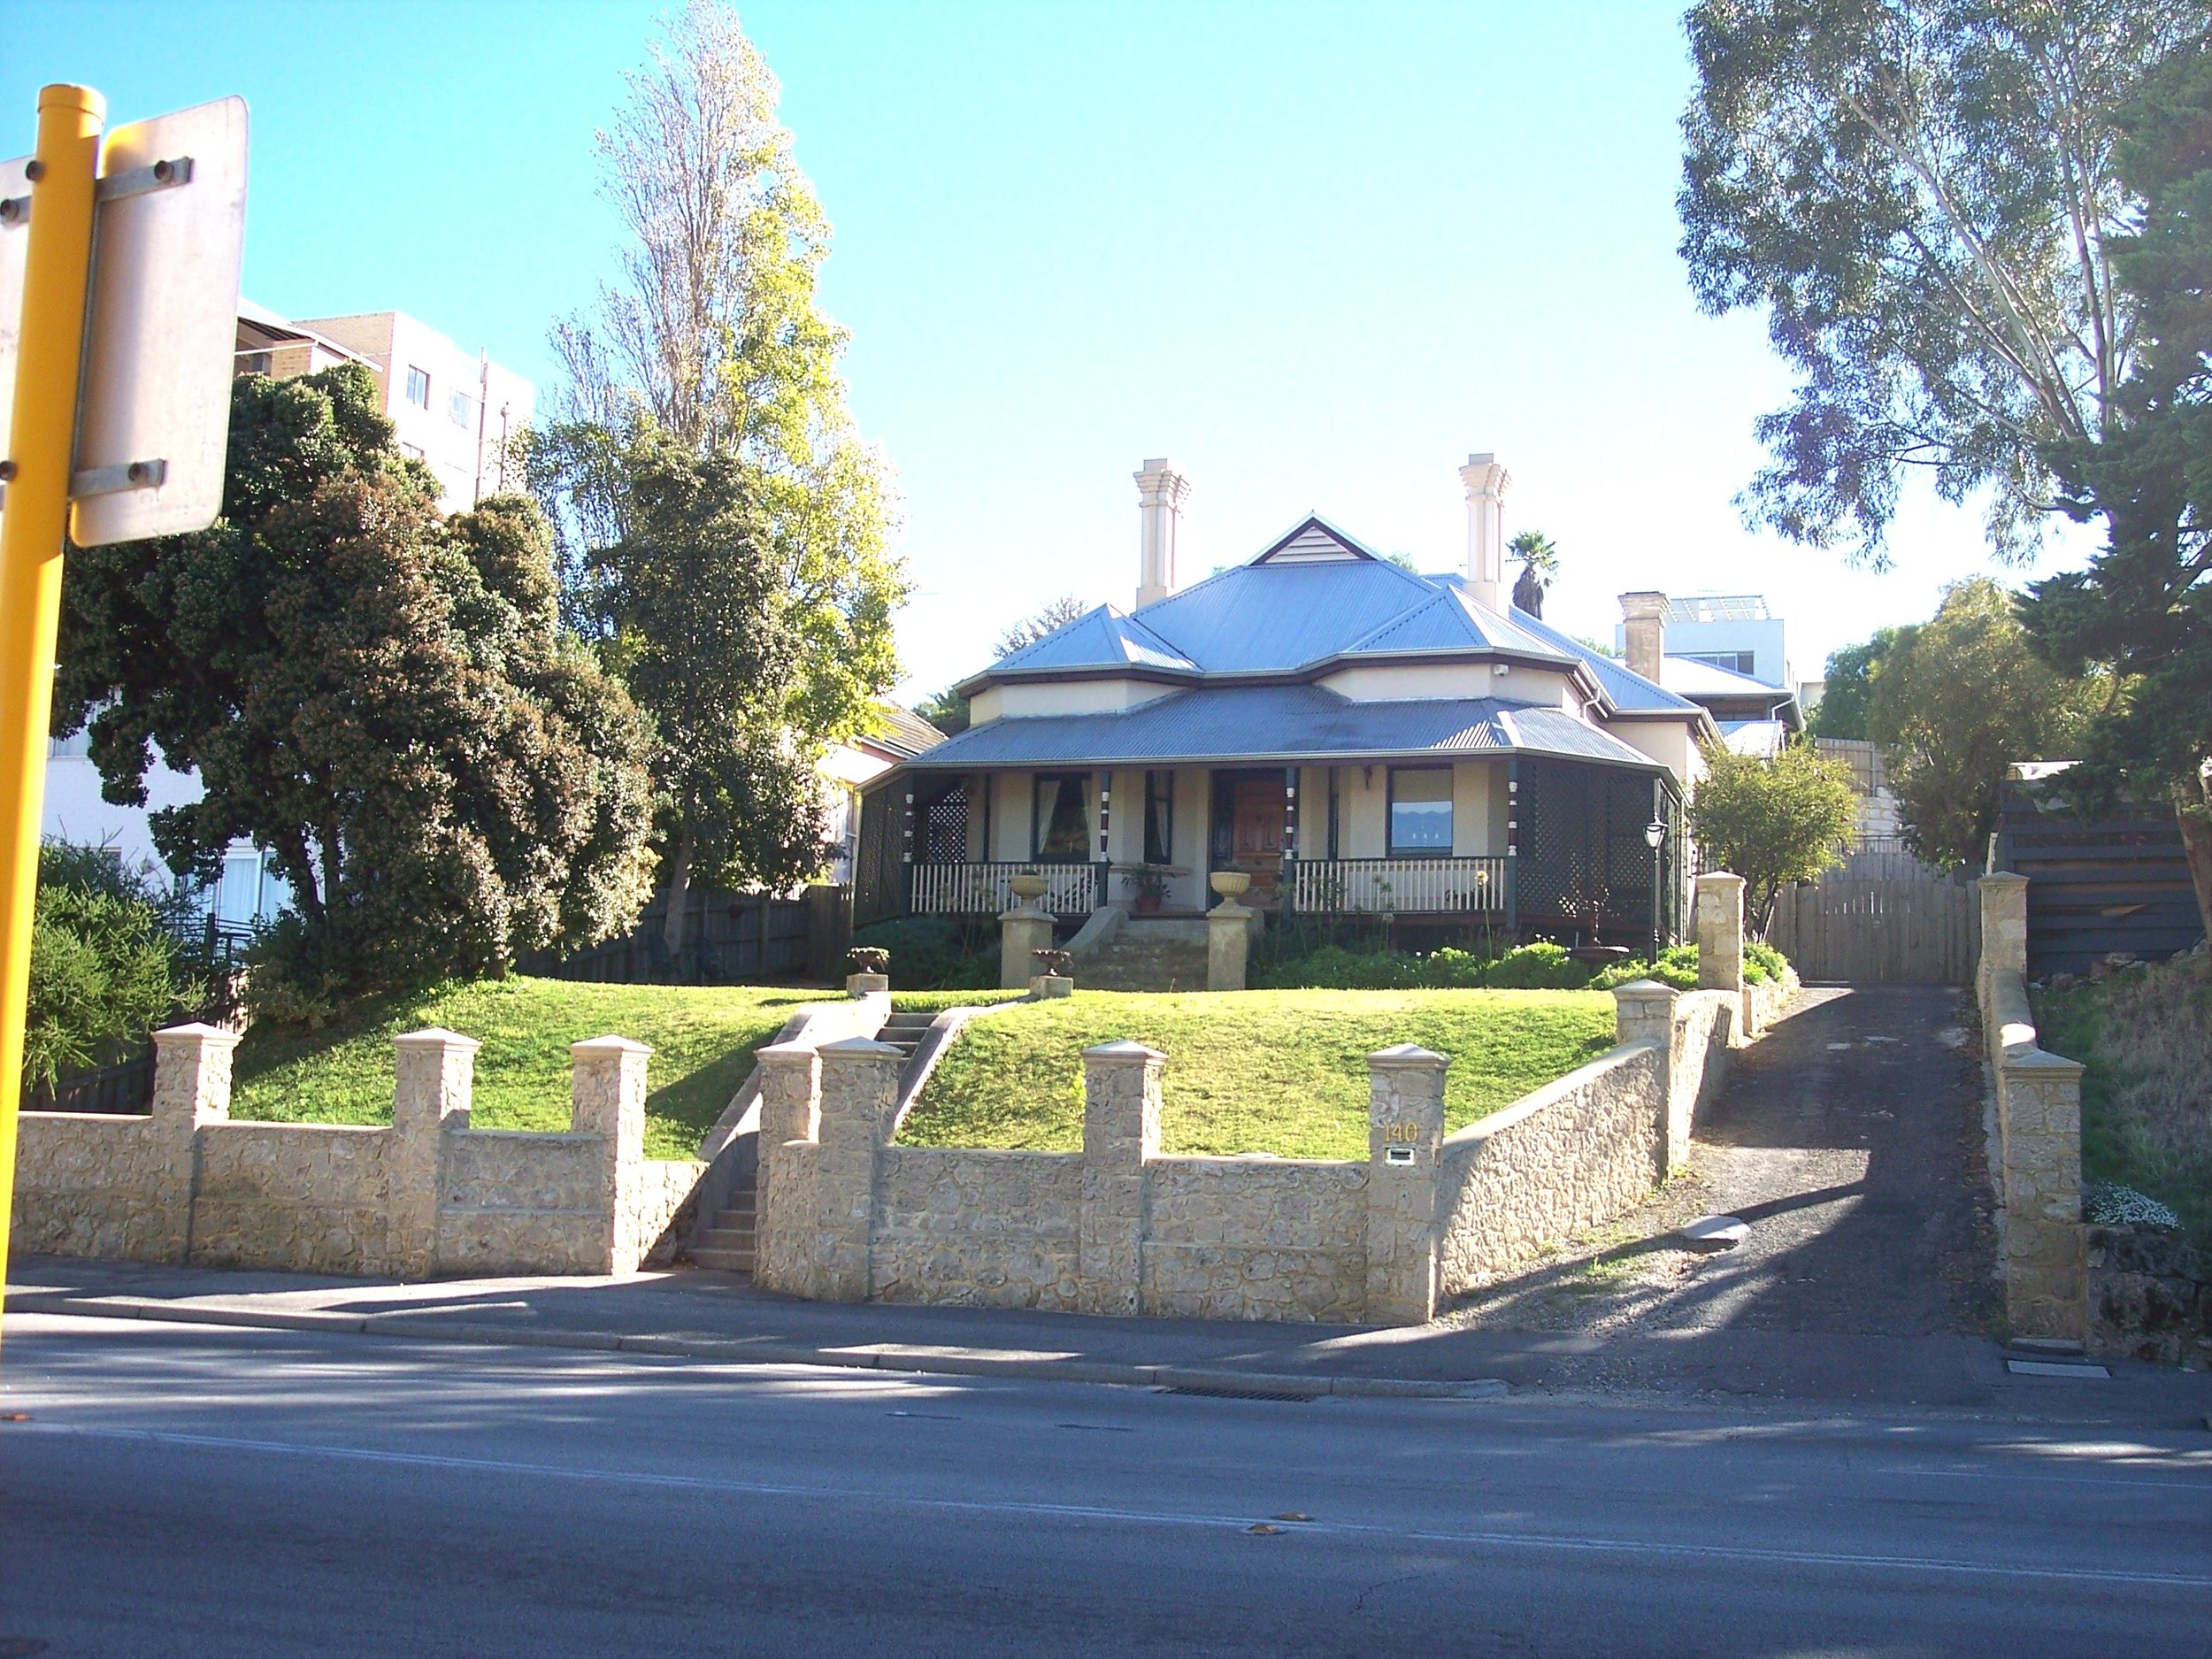 25-5-06 View NNW 140 Canning Highway.jpg